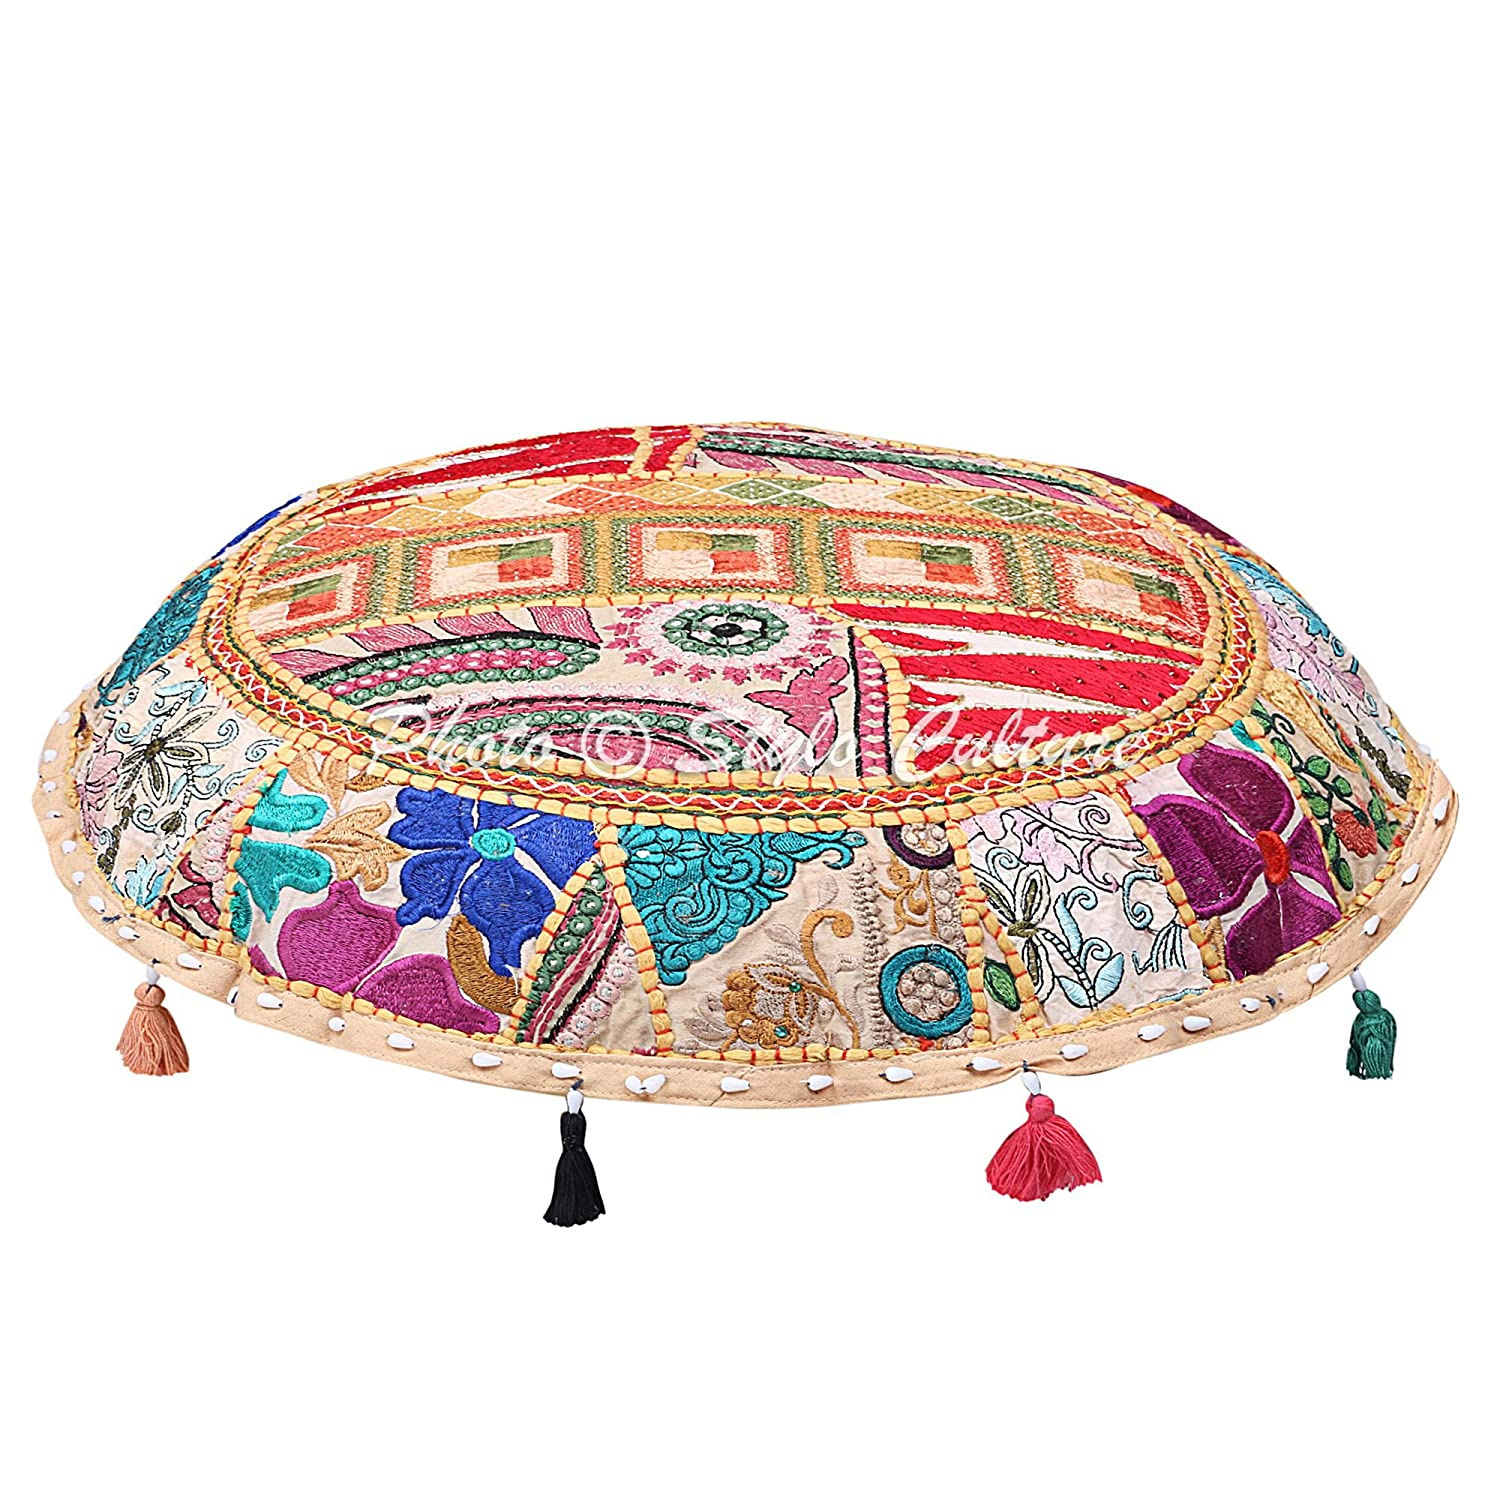 Stylo Culture Cotton Round Floor Pillow Cushion Seating Cover Vintage Embroidered Patchwork Beige 22 Tuffet Indian Floor Cushion Case